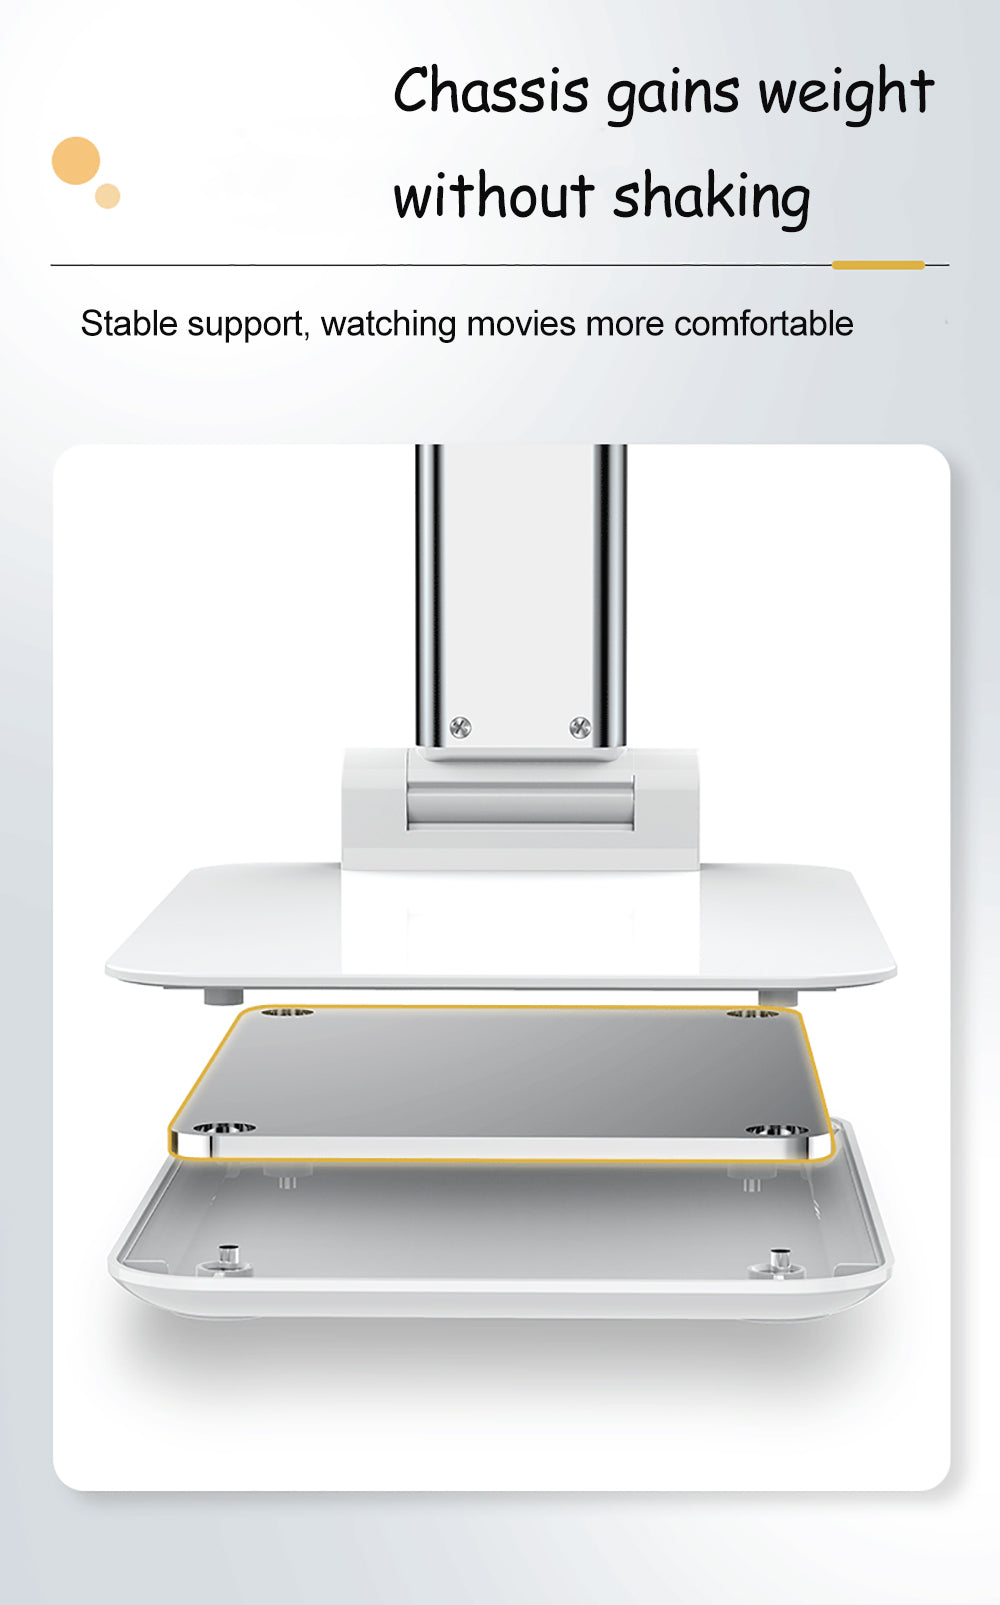 Ergonomic Universal Desktop Stand For iPad iPhone Adjustable Foldable Tablet Holder For Watching Movies Zoom Calls Suitable For Most Phones Tablets